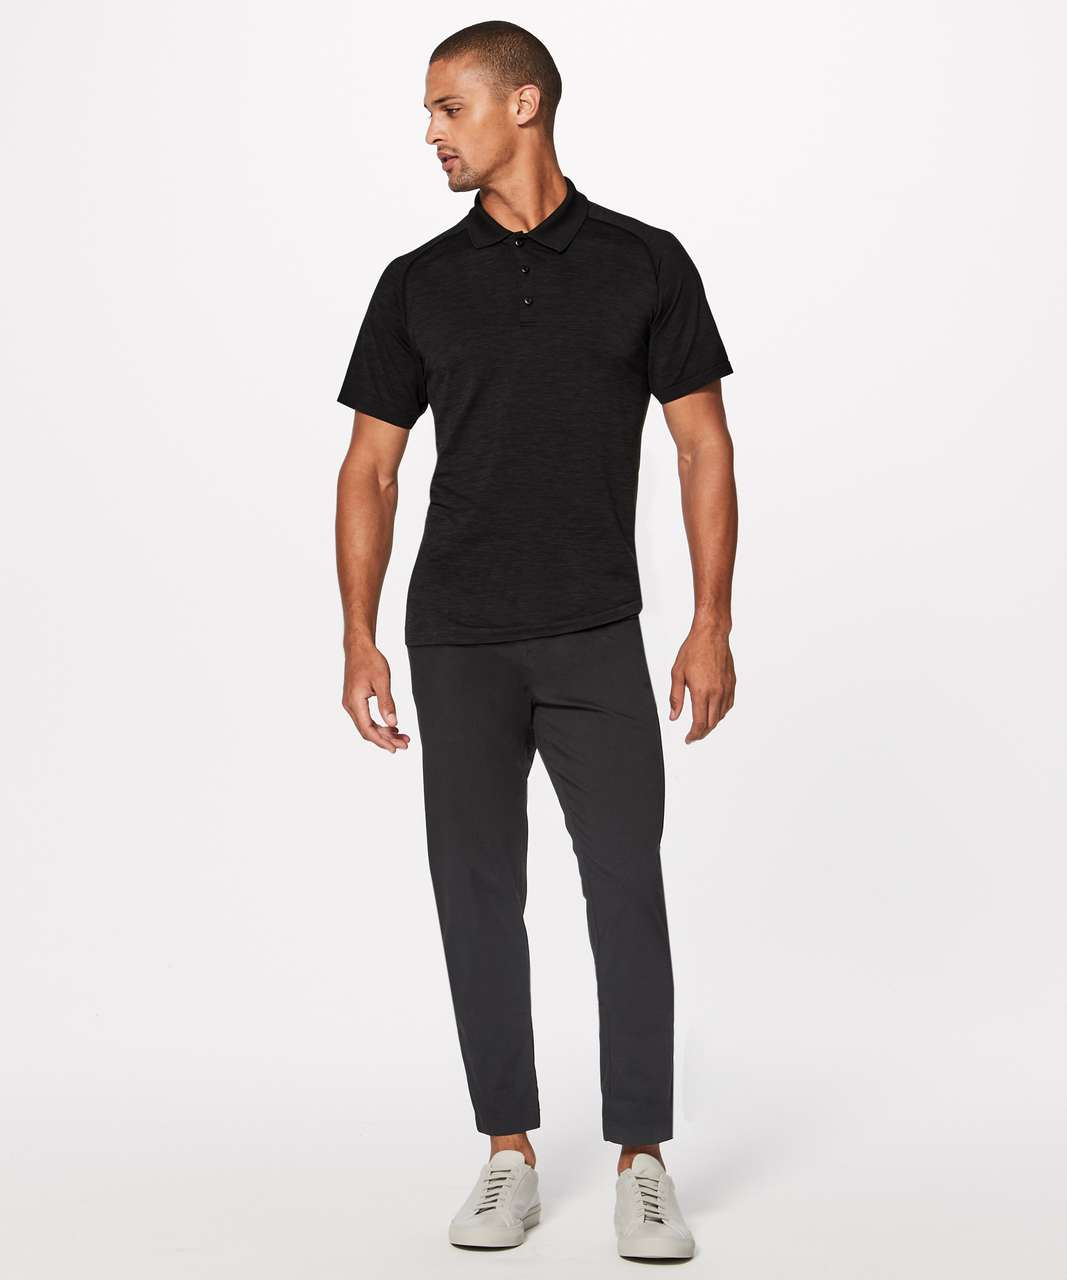 Lululemon Metal Vent Tech Polo - Deep Coal / Black